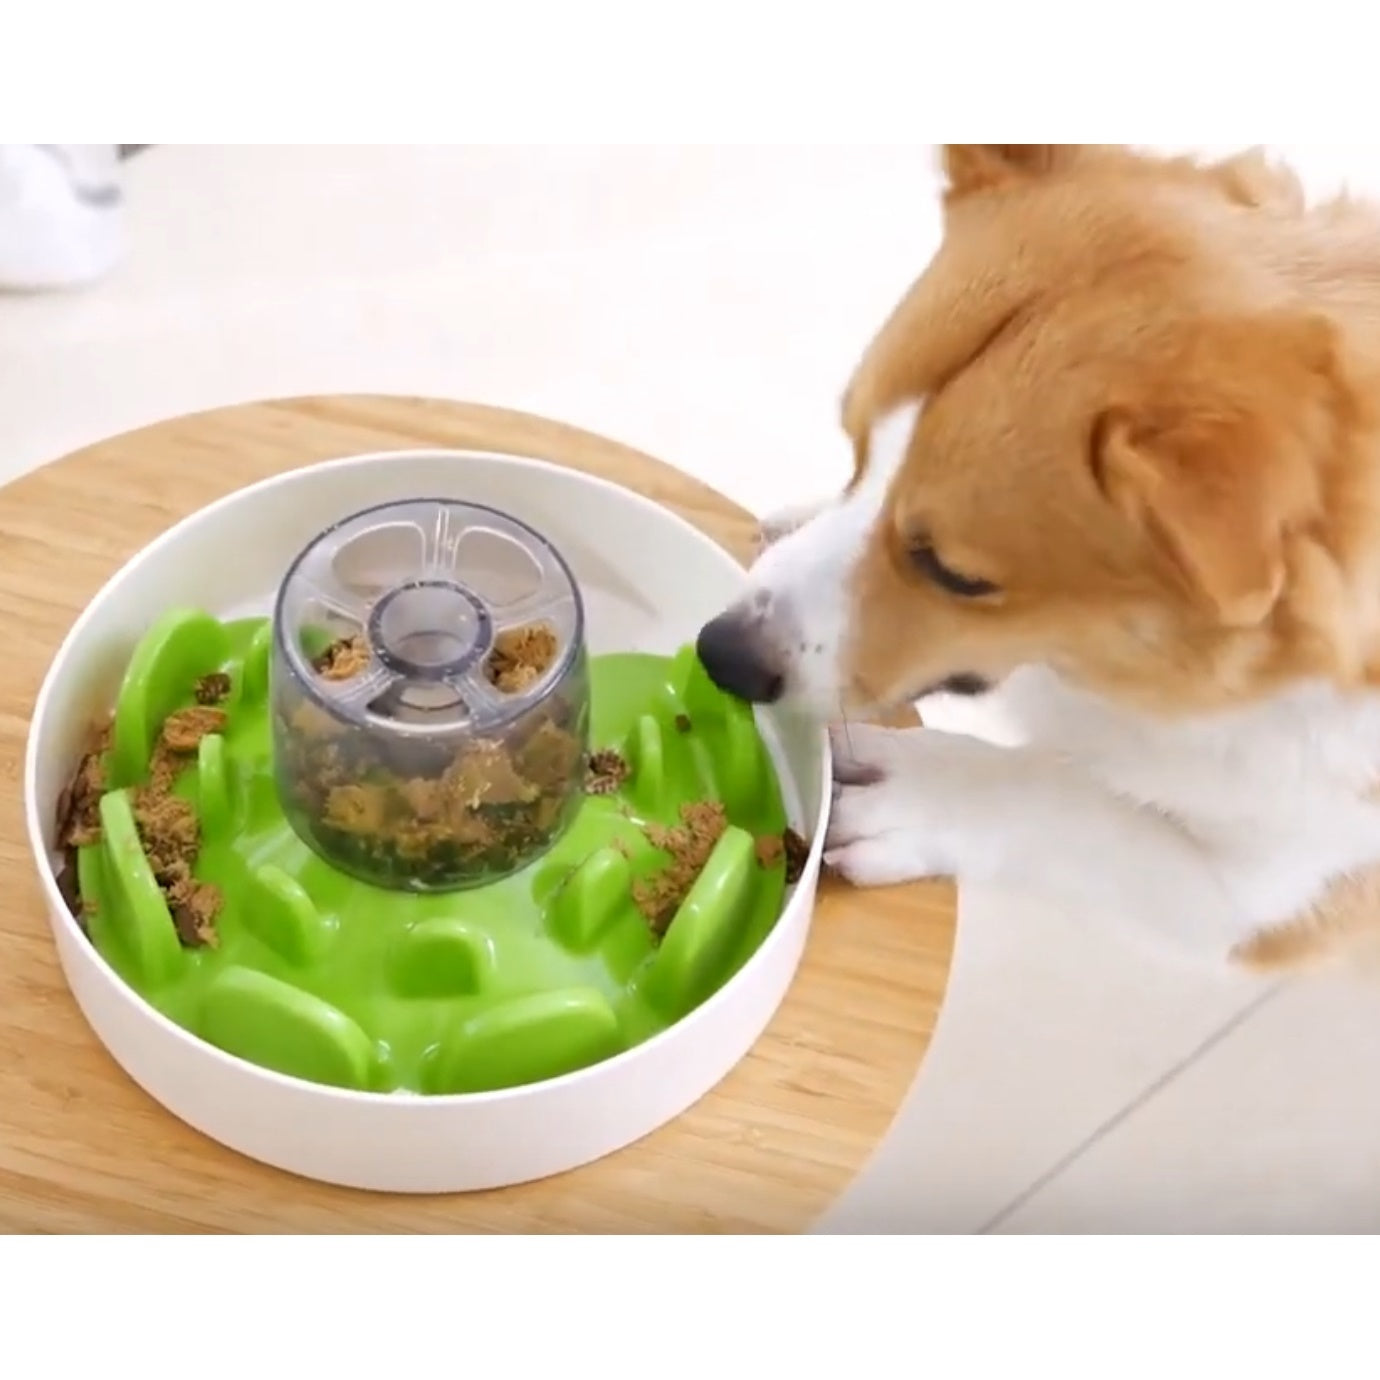 SPIN UFO Maze Interactive Dog Bowl and Slow Feeder